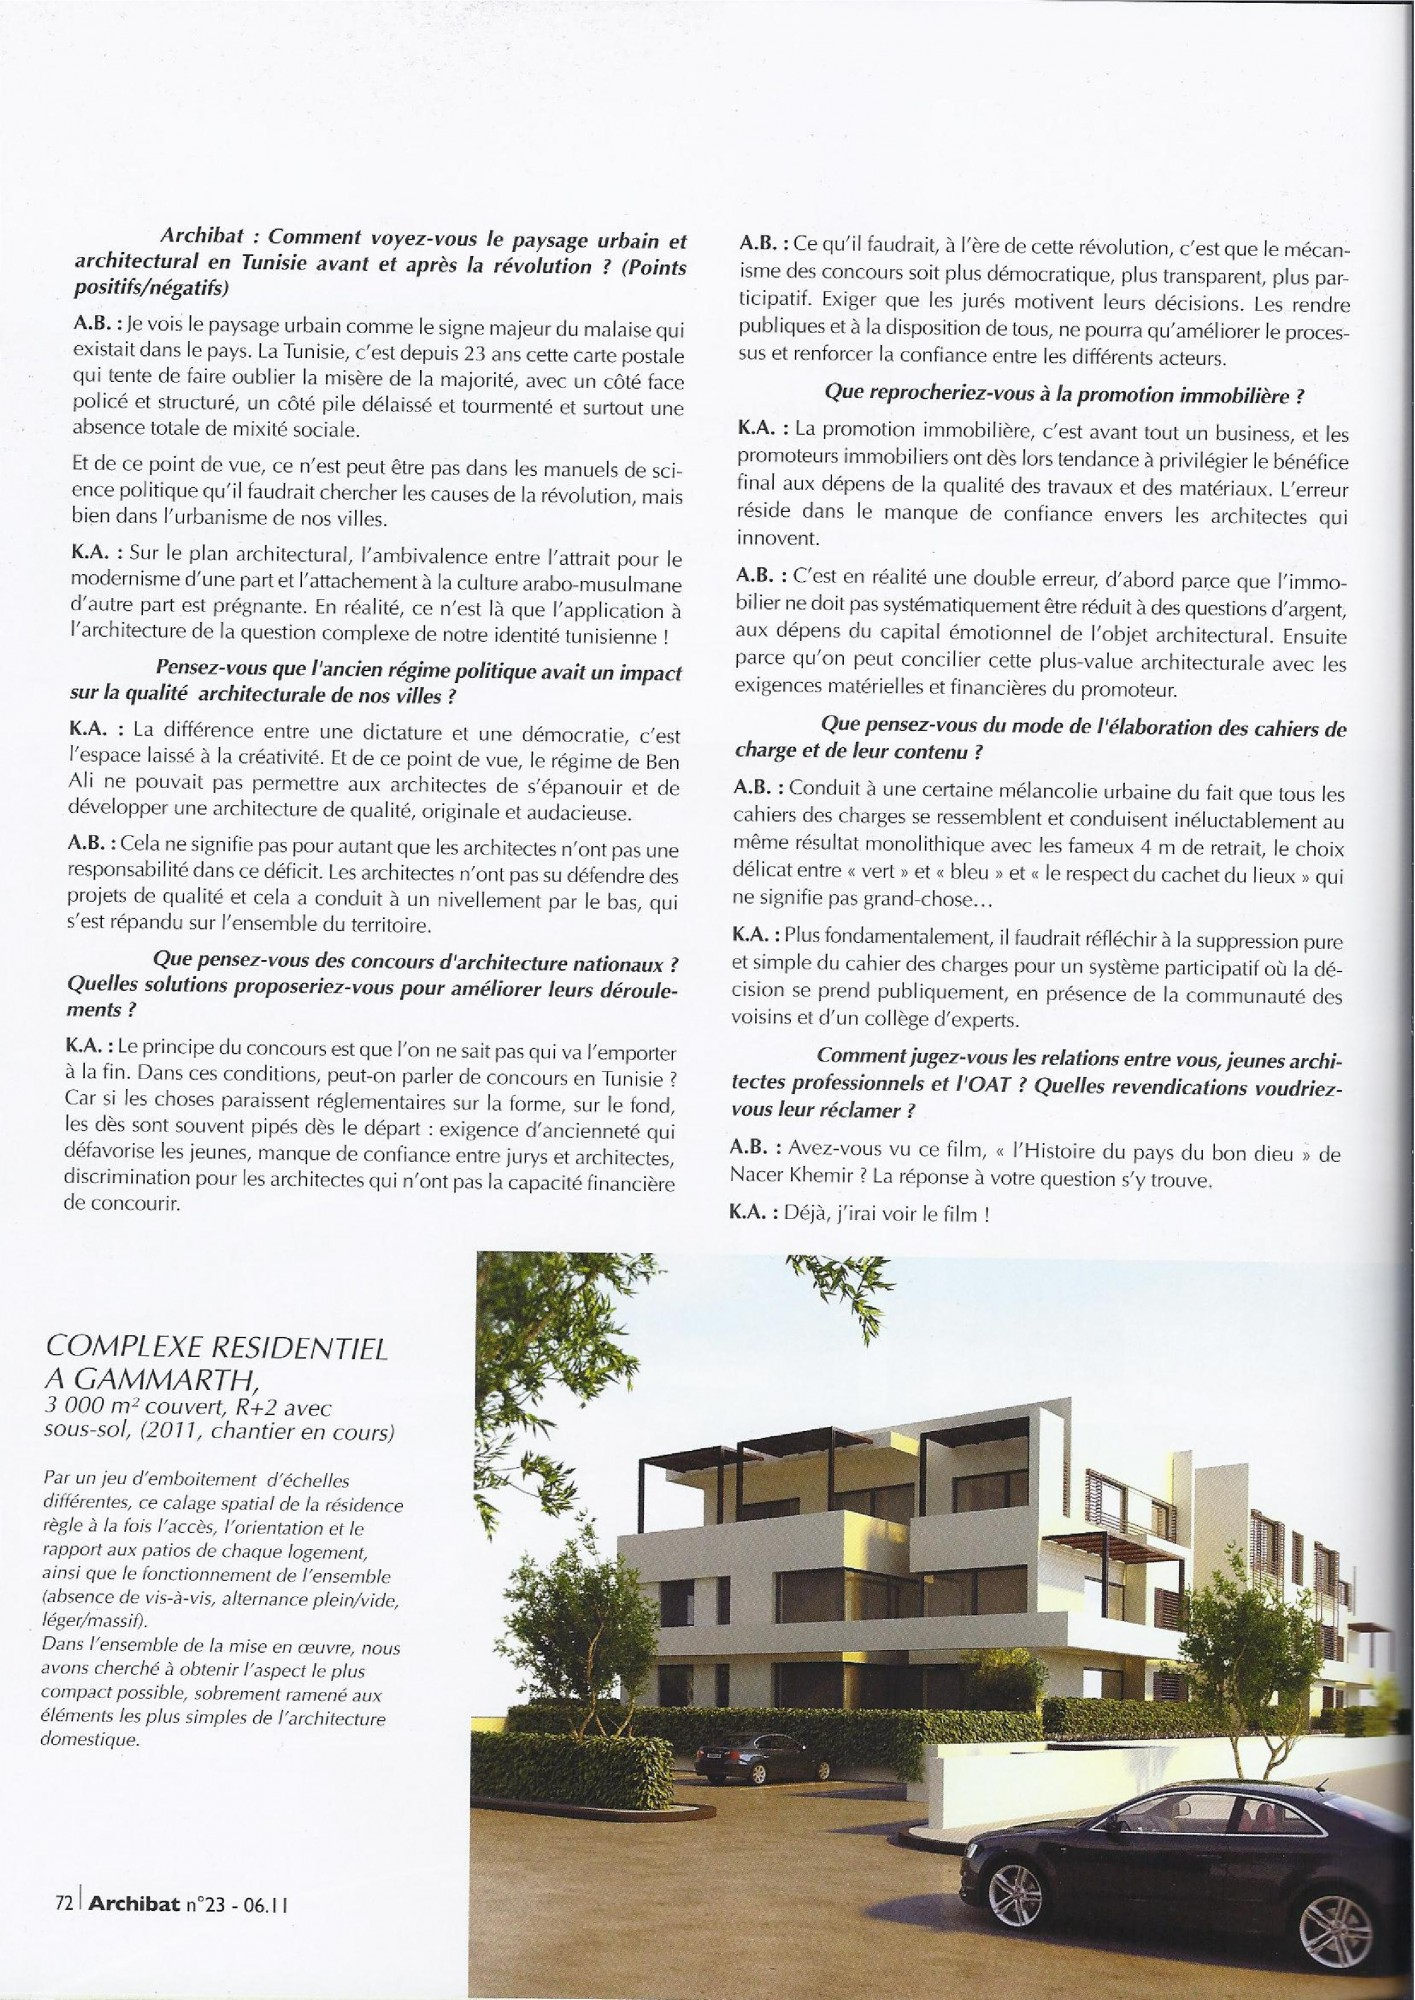 http://www.baakarchitects.com/wp-content/uploads/2015/11/publication-23-page-004-1415x2000.jpg